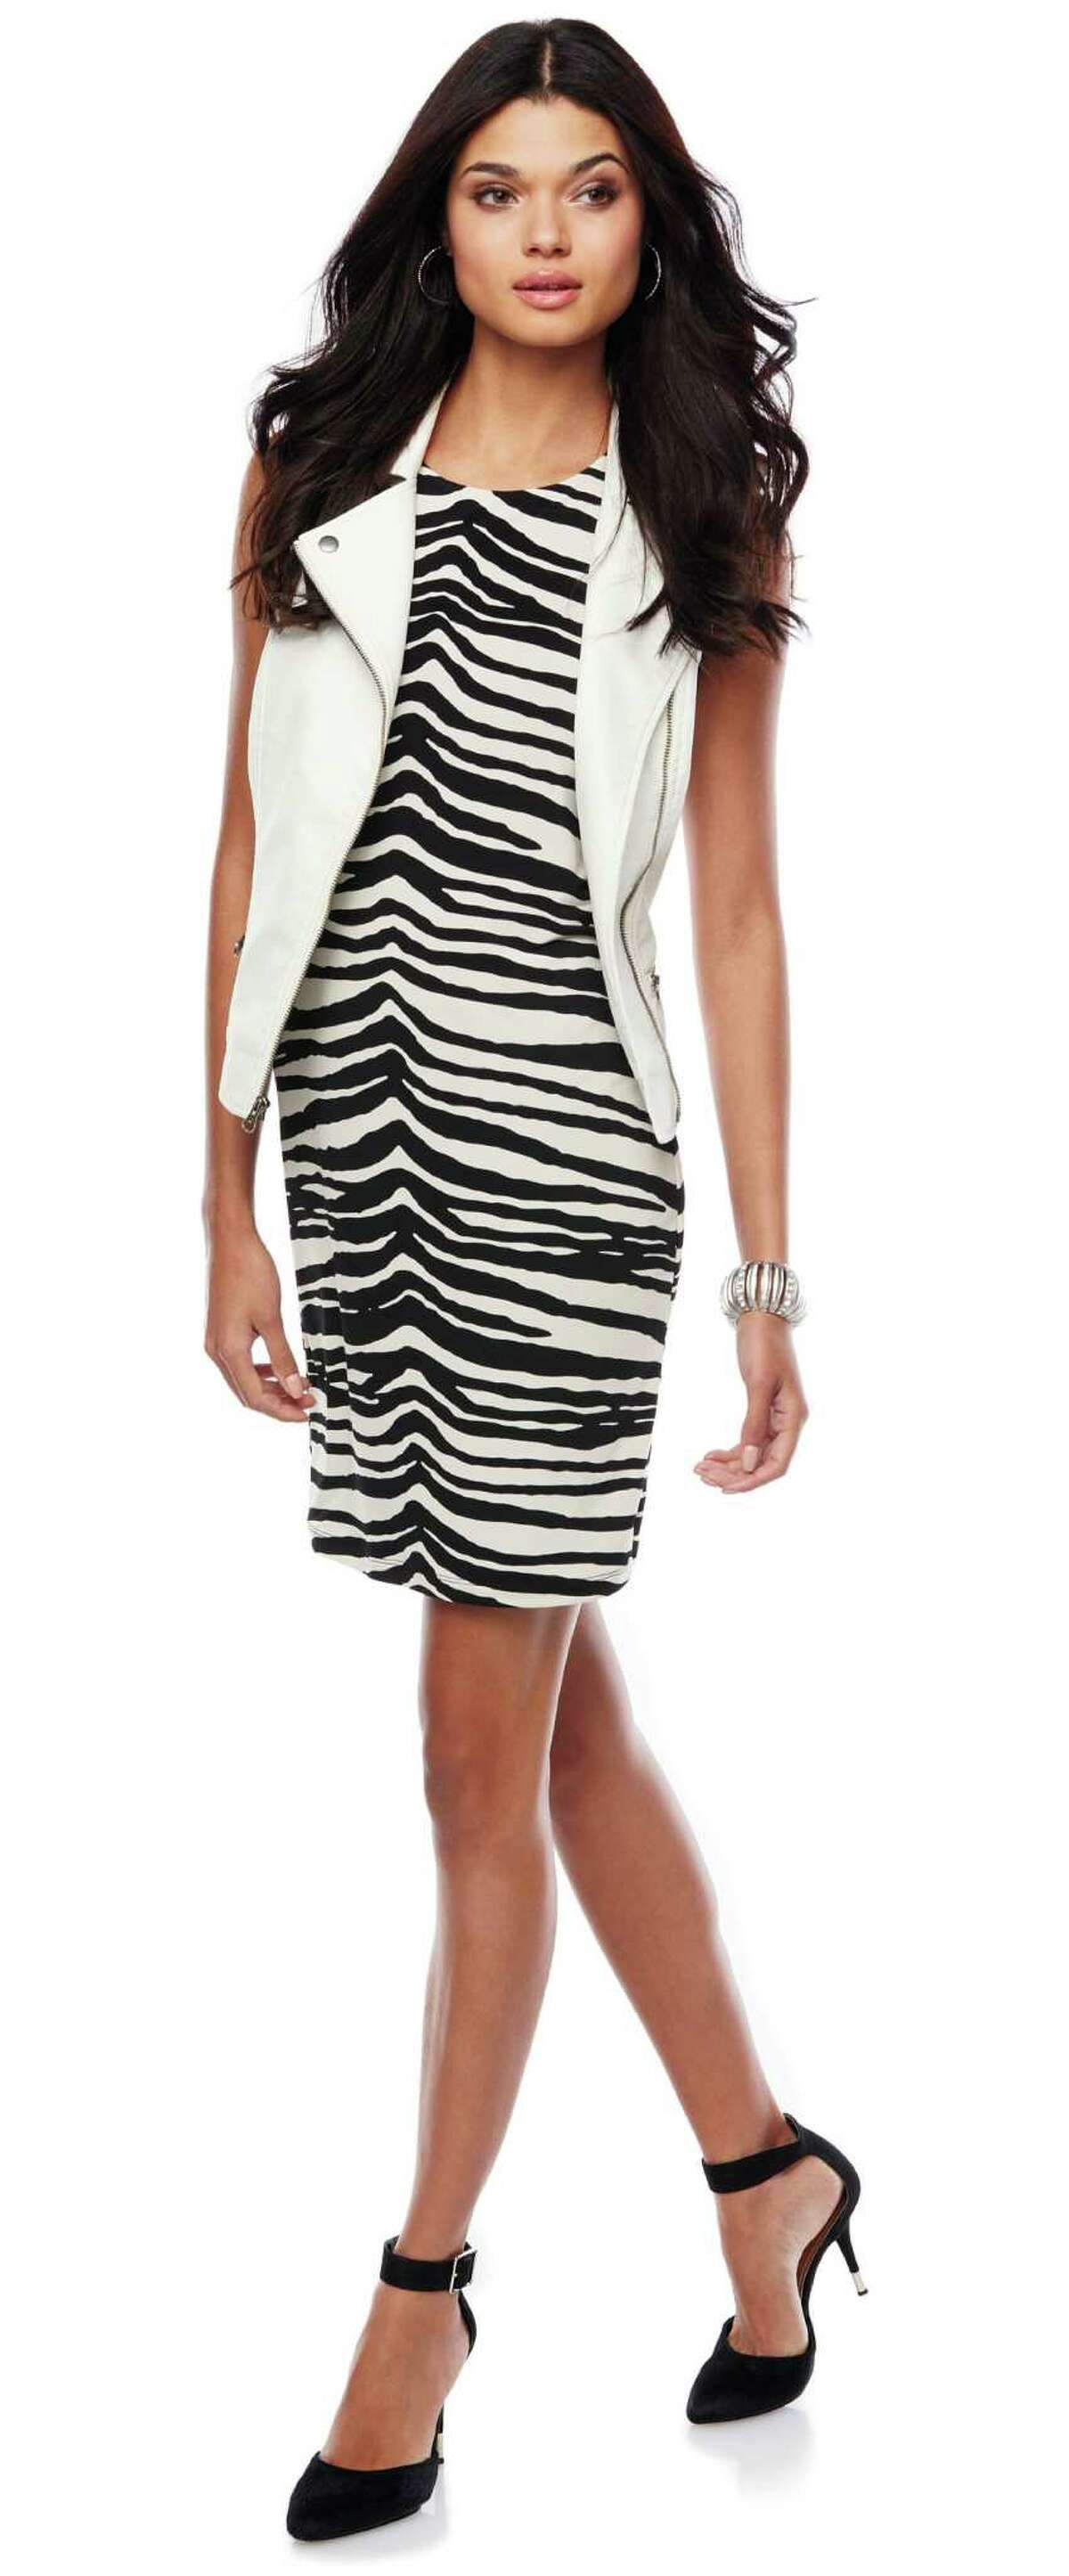 Back-to-school style is all about having fun, as in this Jennifer Lopez-brand look: a zebra-print dress worn with an oversized vest from Kohl's.